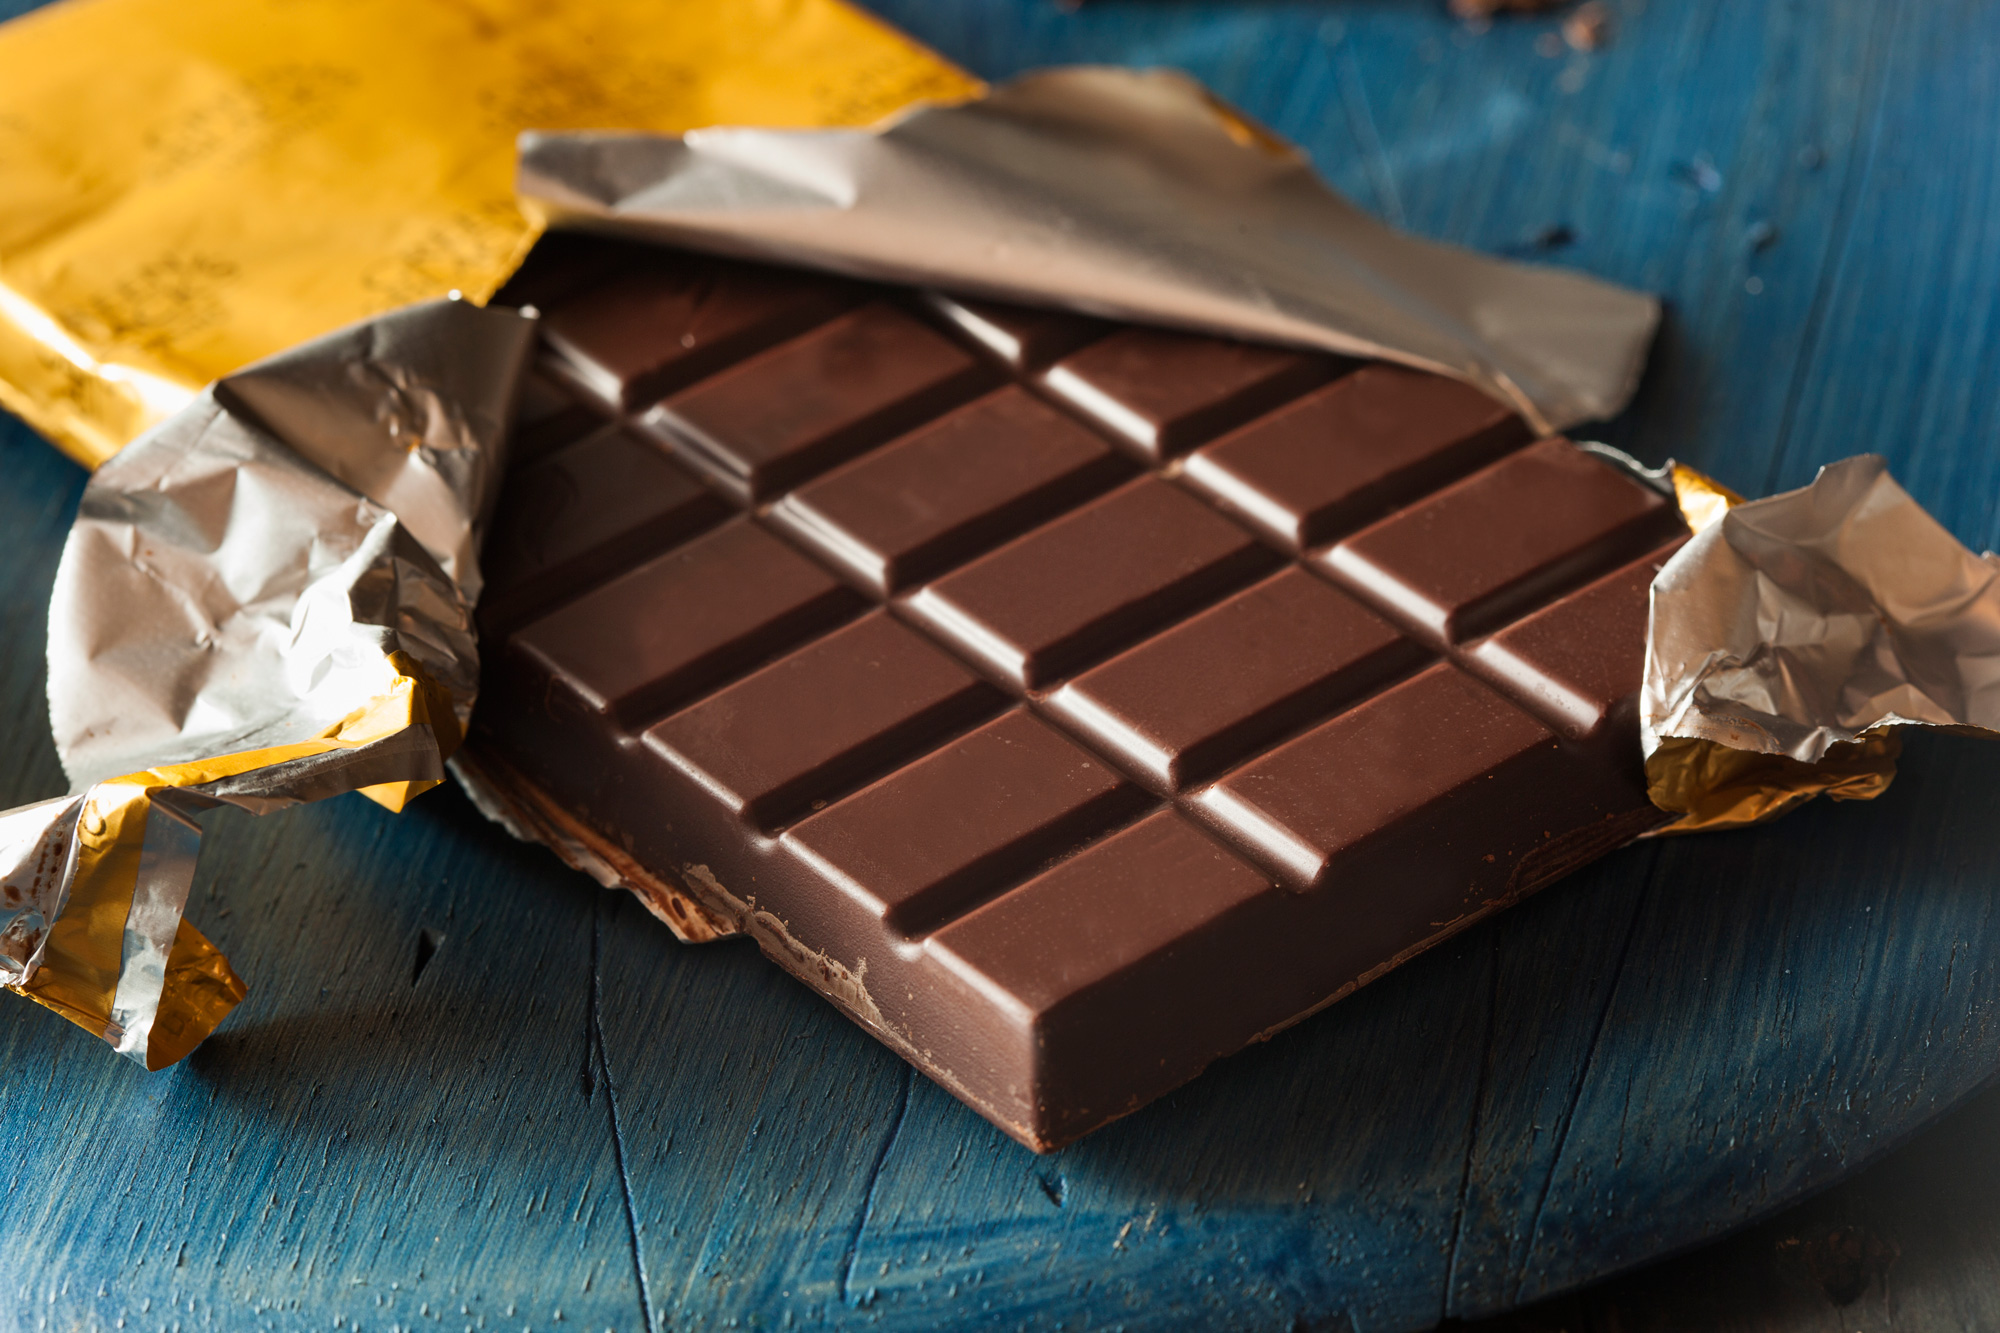 Scientists Predict Chocolate Will Go Extinct by 2050